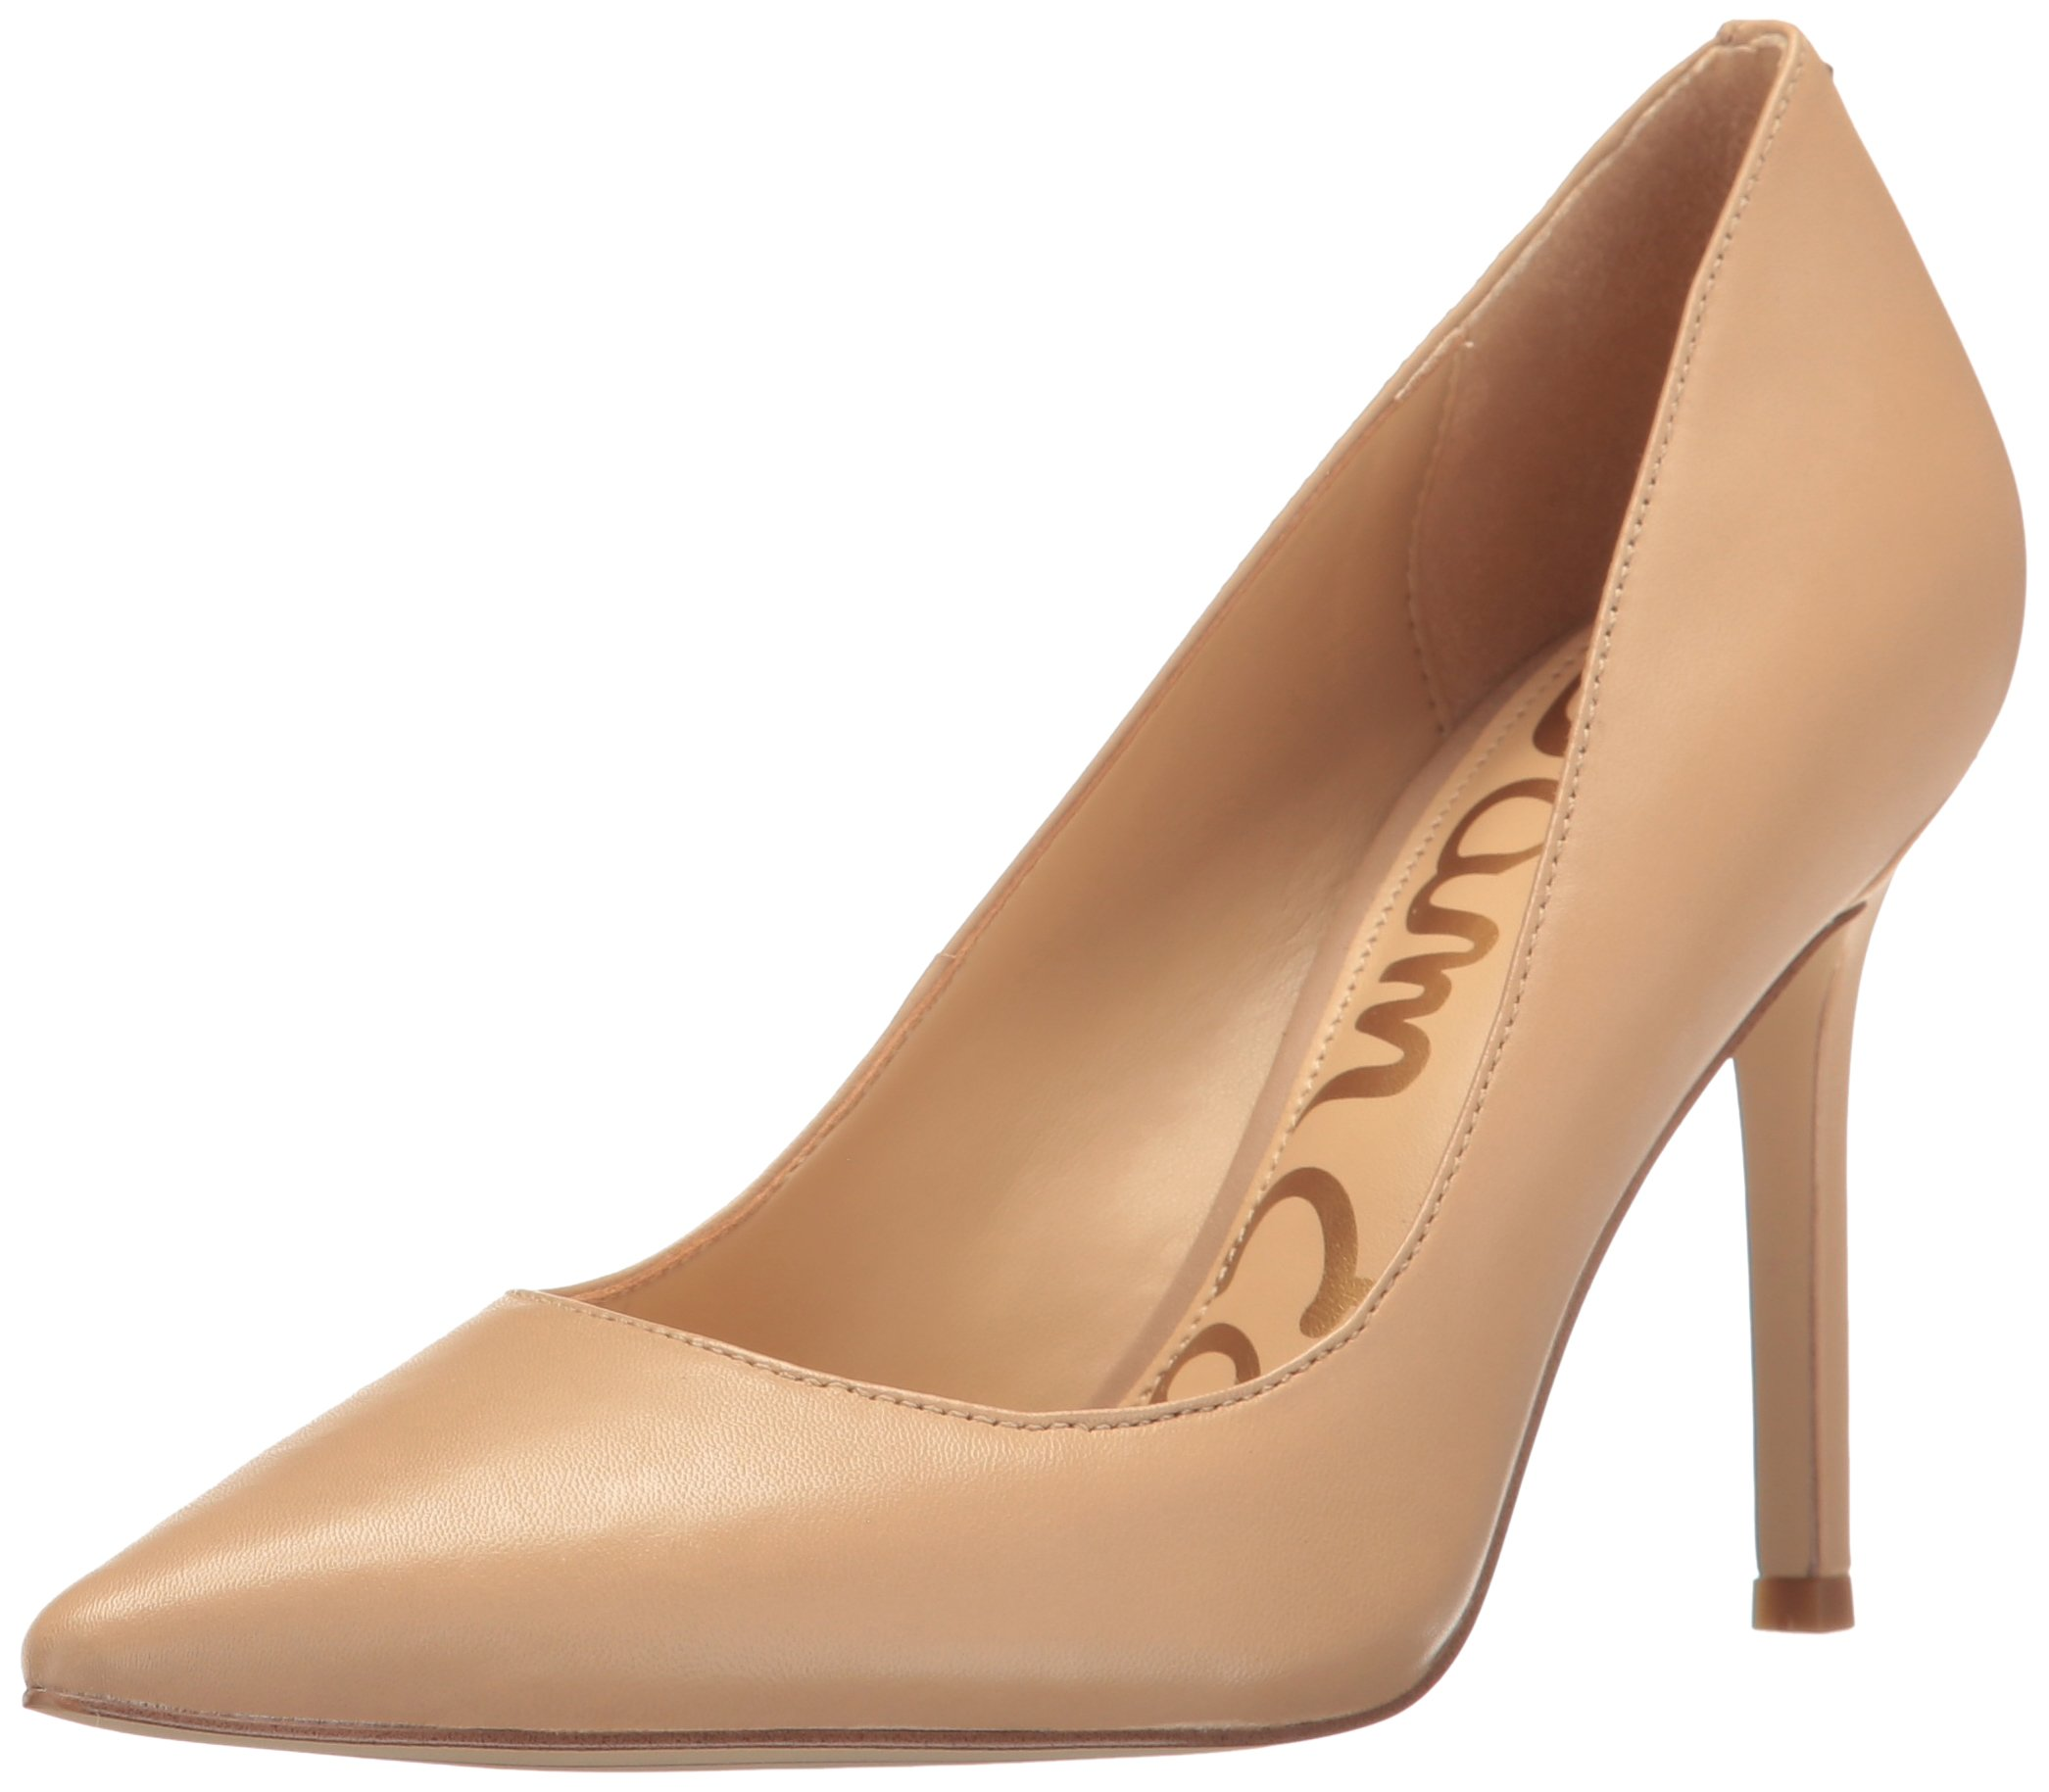 Sam Edelman Women's Hazel Dress Pump, Classic Nude Leather, 8 M US